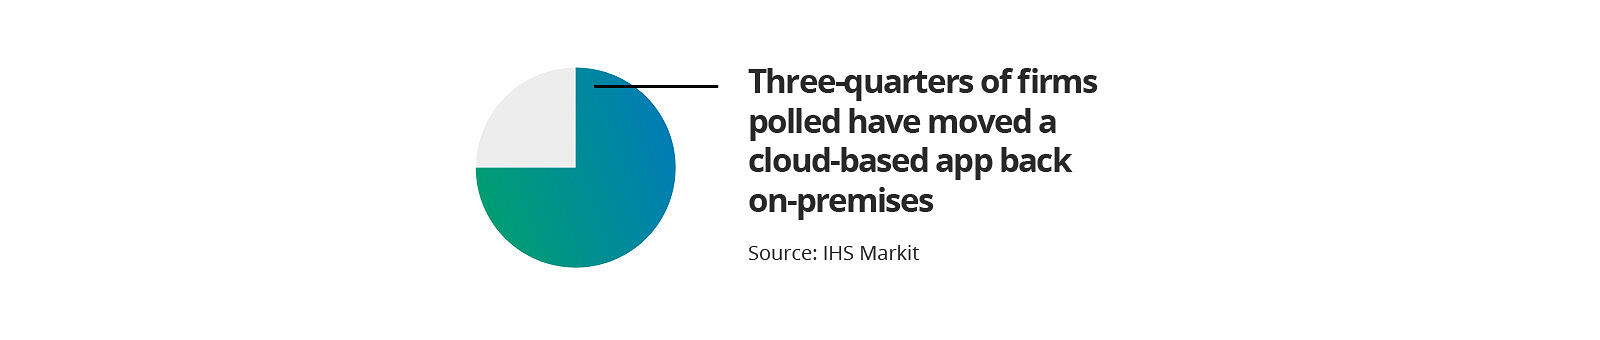 Three-quarters of firms have moved cloud apps back on prem